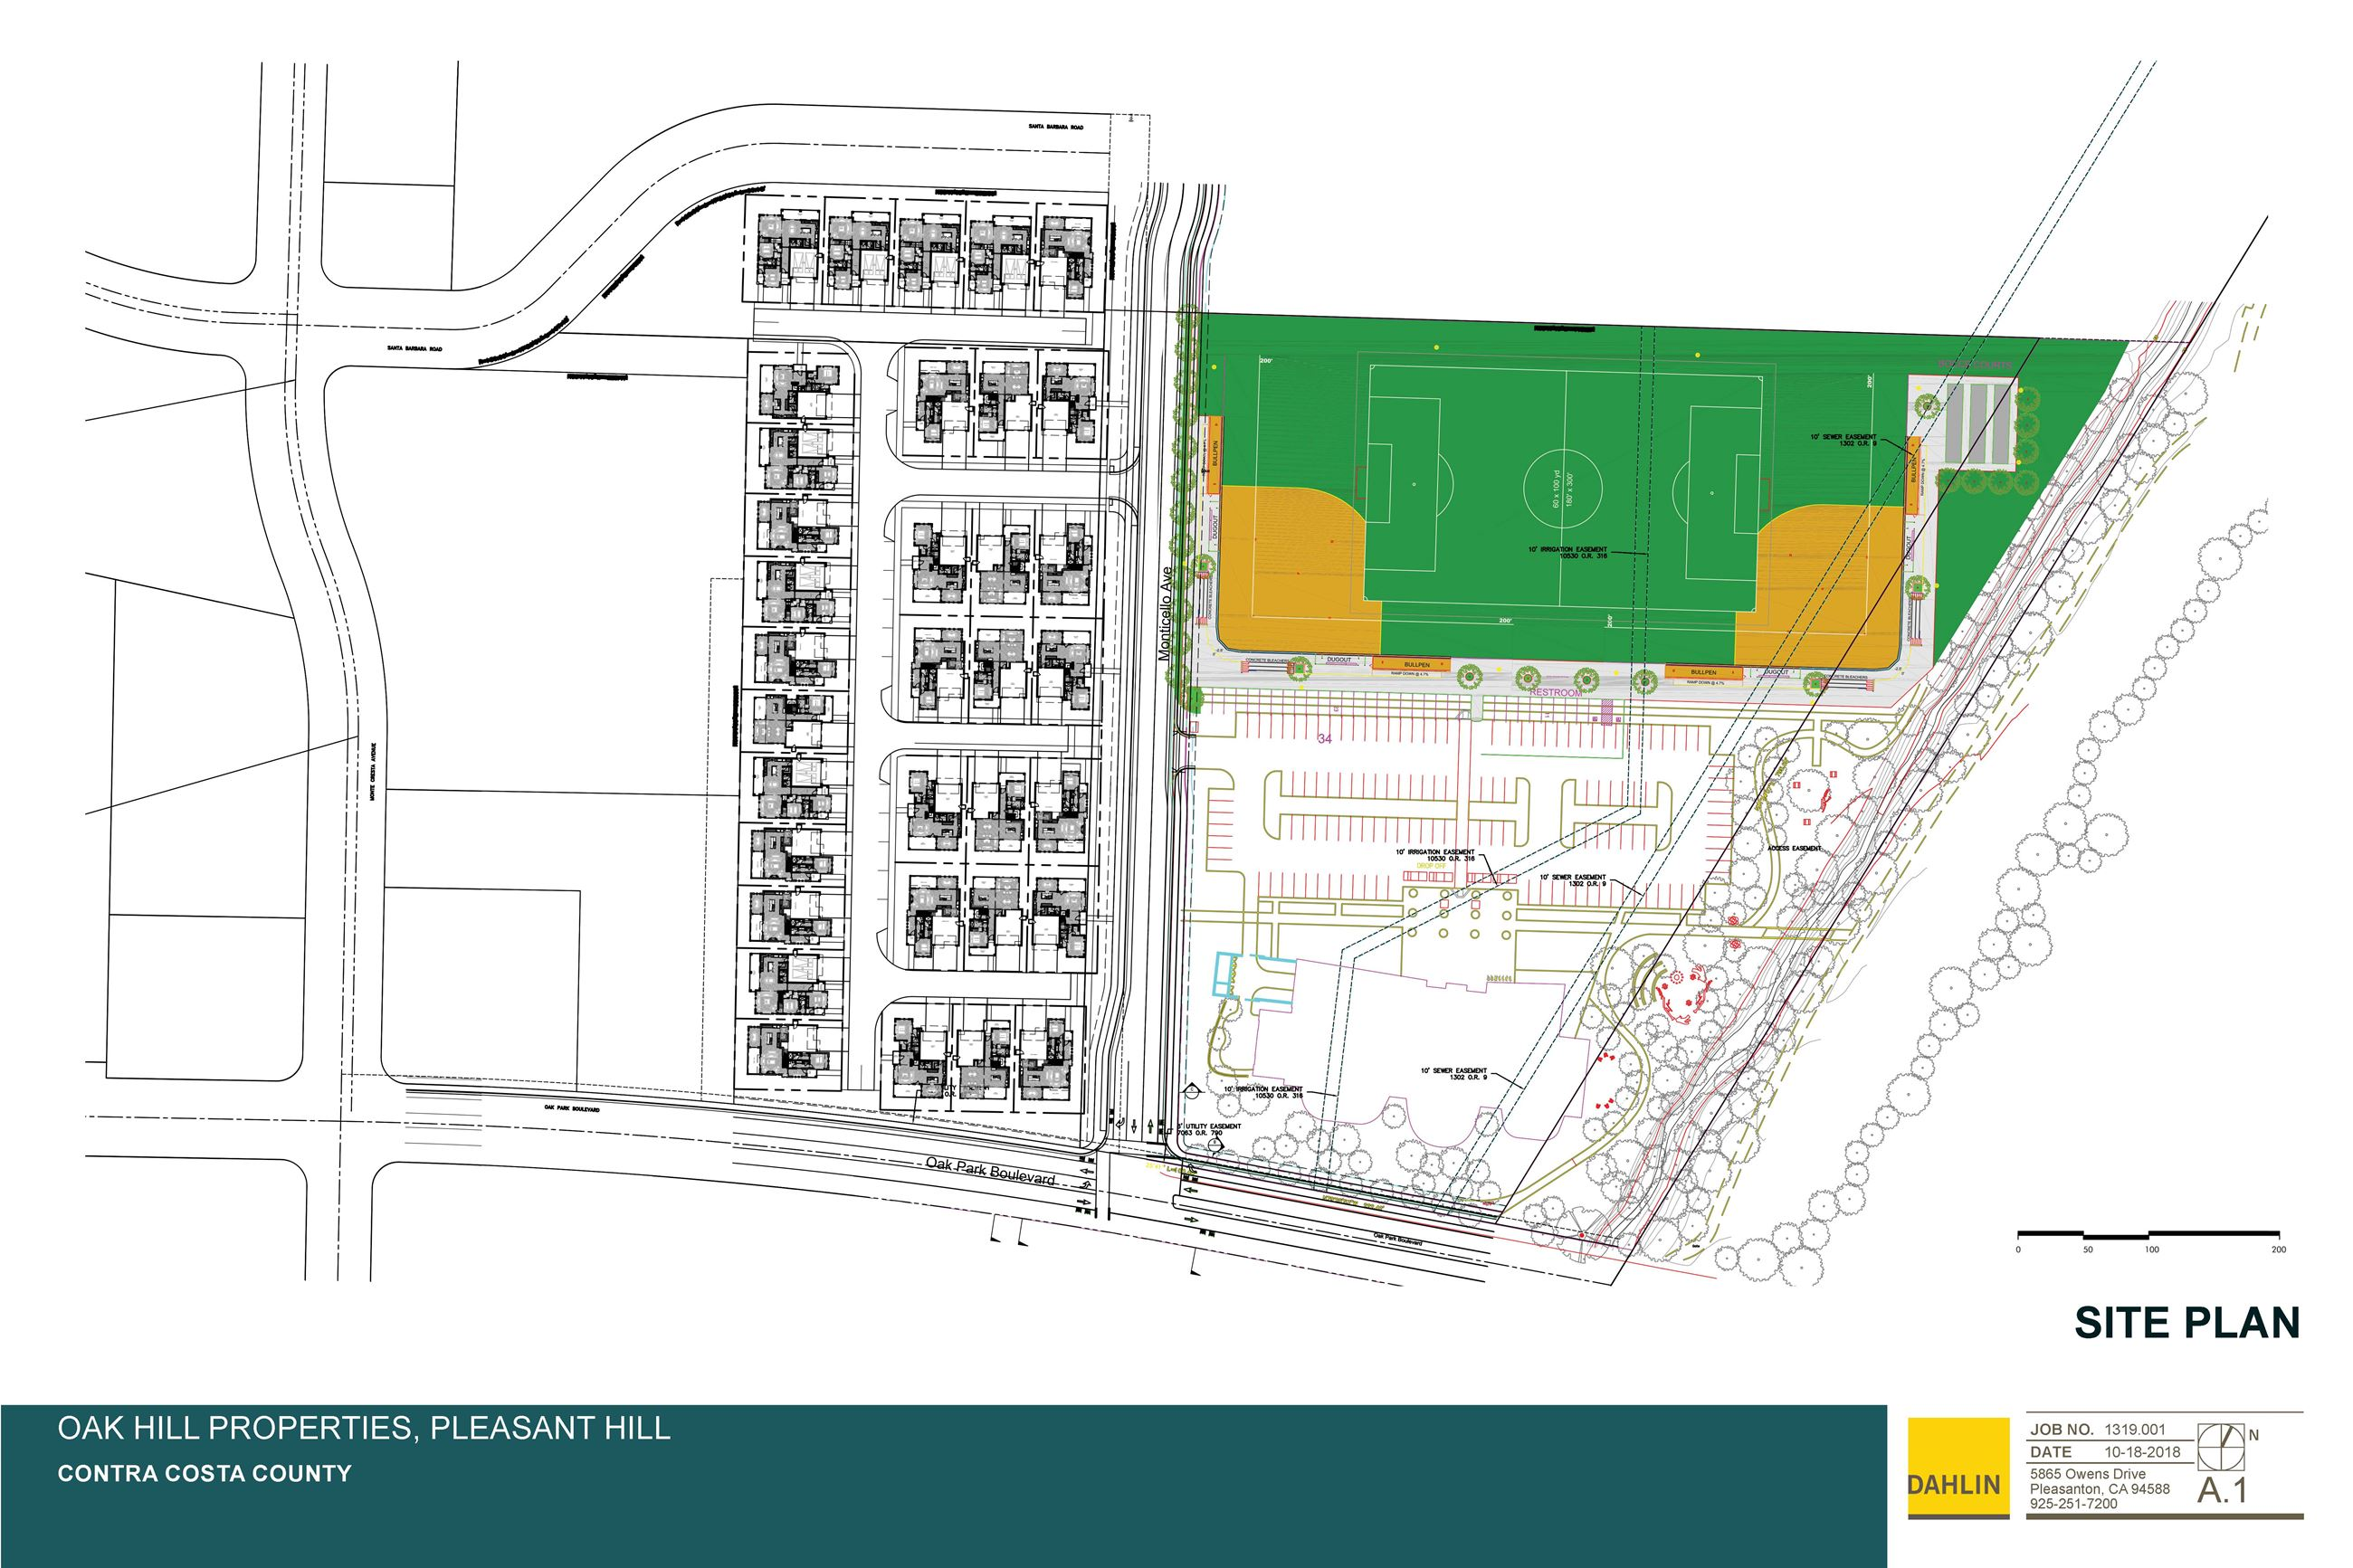 Site Plan for NOP